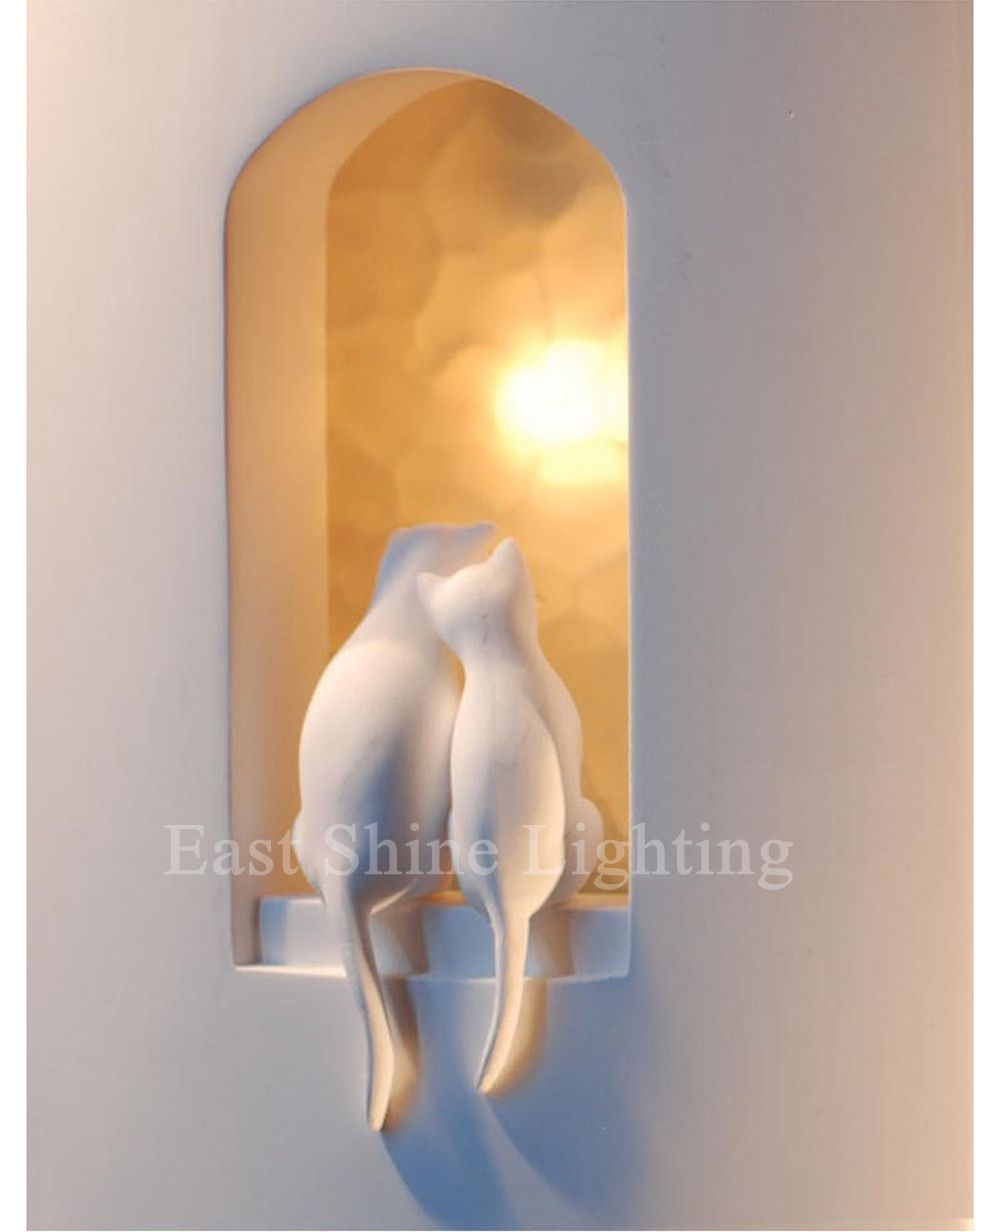 Modern Wall Lamps Two Loving Kitties Gypsum Lovely Wall Lights Bedroom Bedside Wall Sconces kitchen cabinet Lamps abajur(China (Mainland))